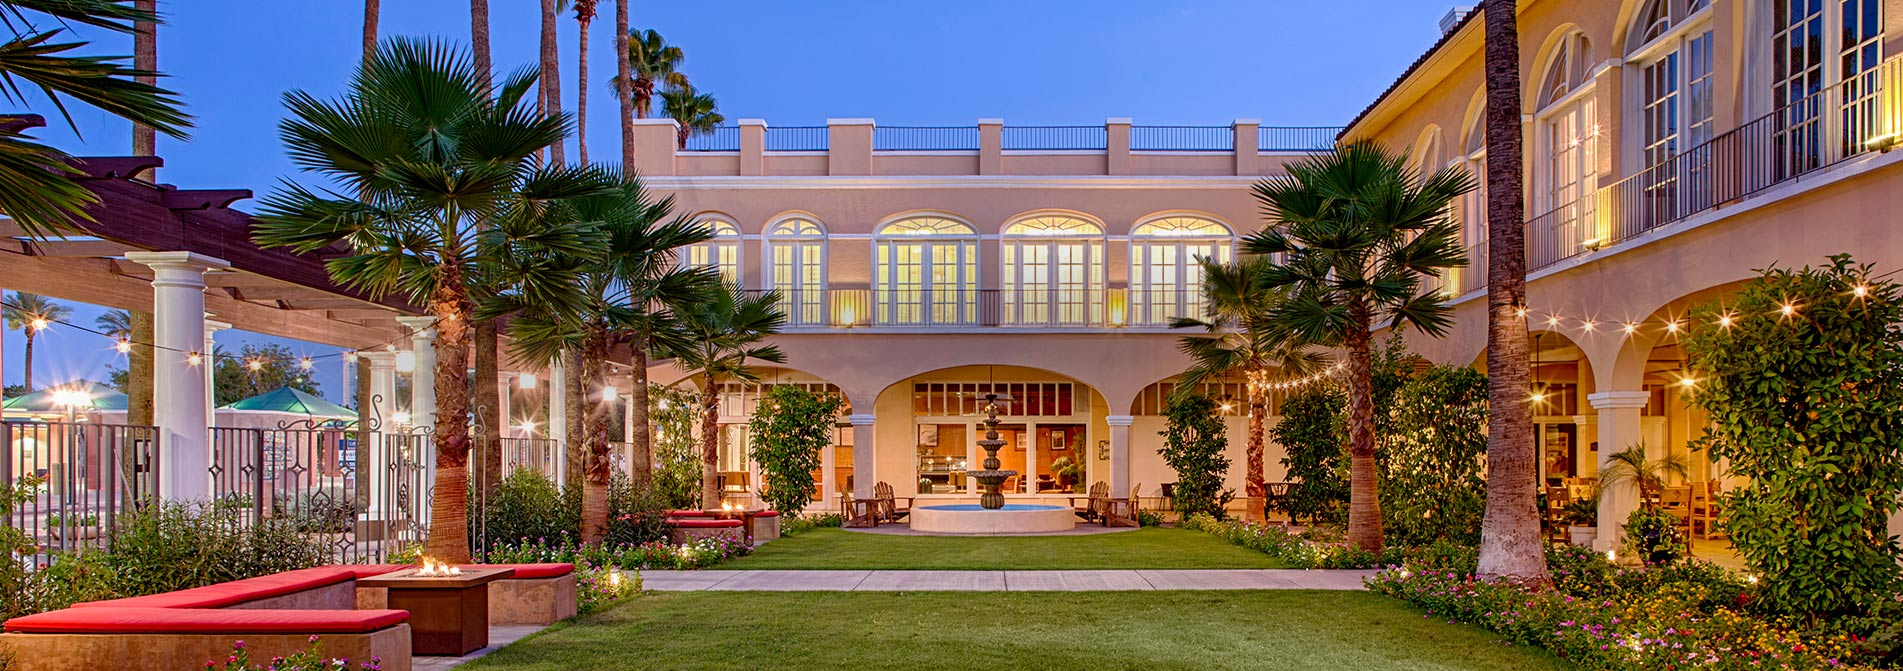 Historic Yet Contemporary Traditional Modern